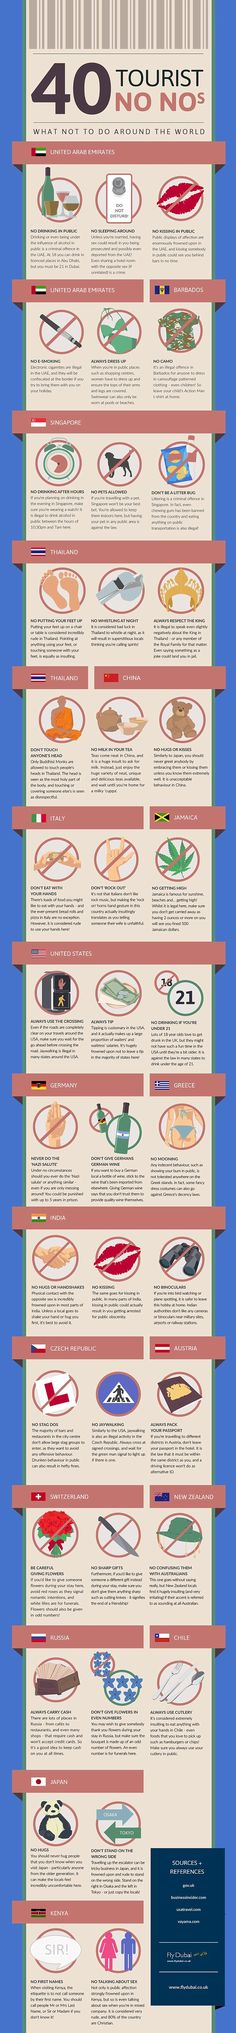 When travelling abroad, make sure you check this infographic FIRST